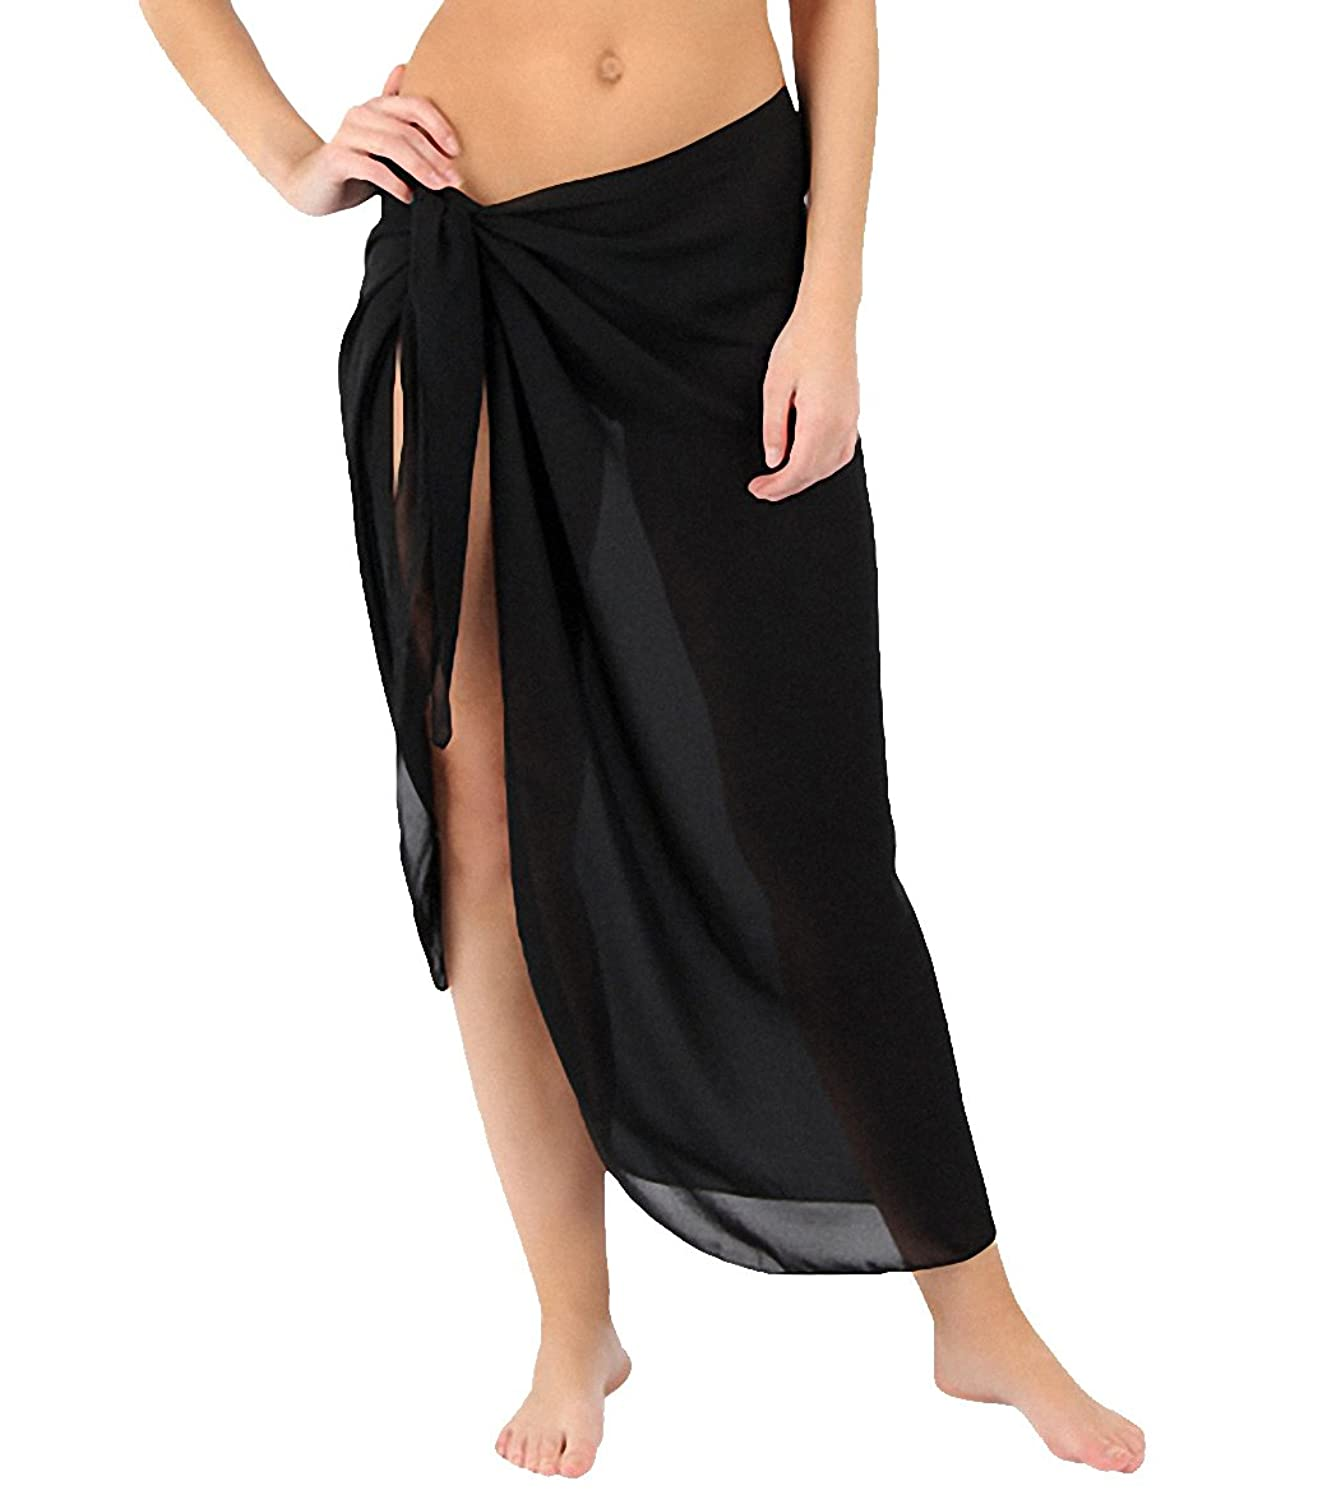 6d75122b6fb48 Fun Beach Sarong  Cover up your swimsuit or bikini bottom with this trendy